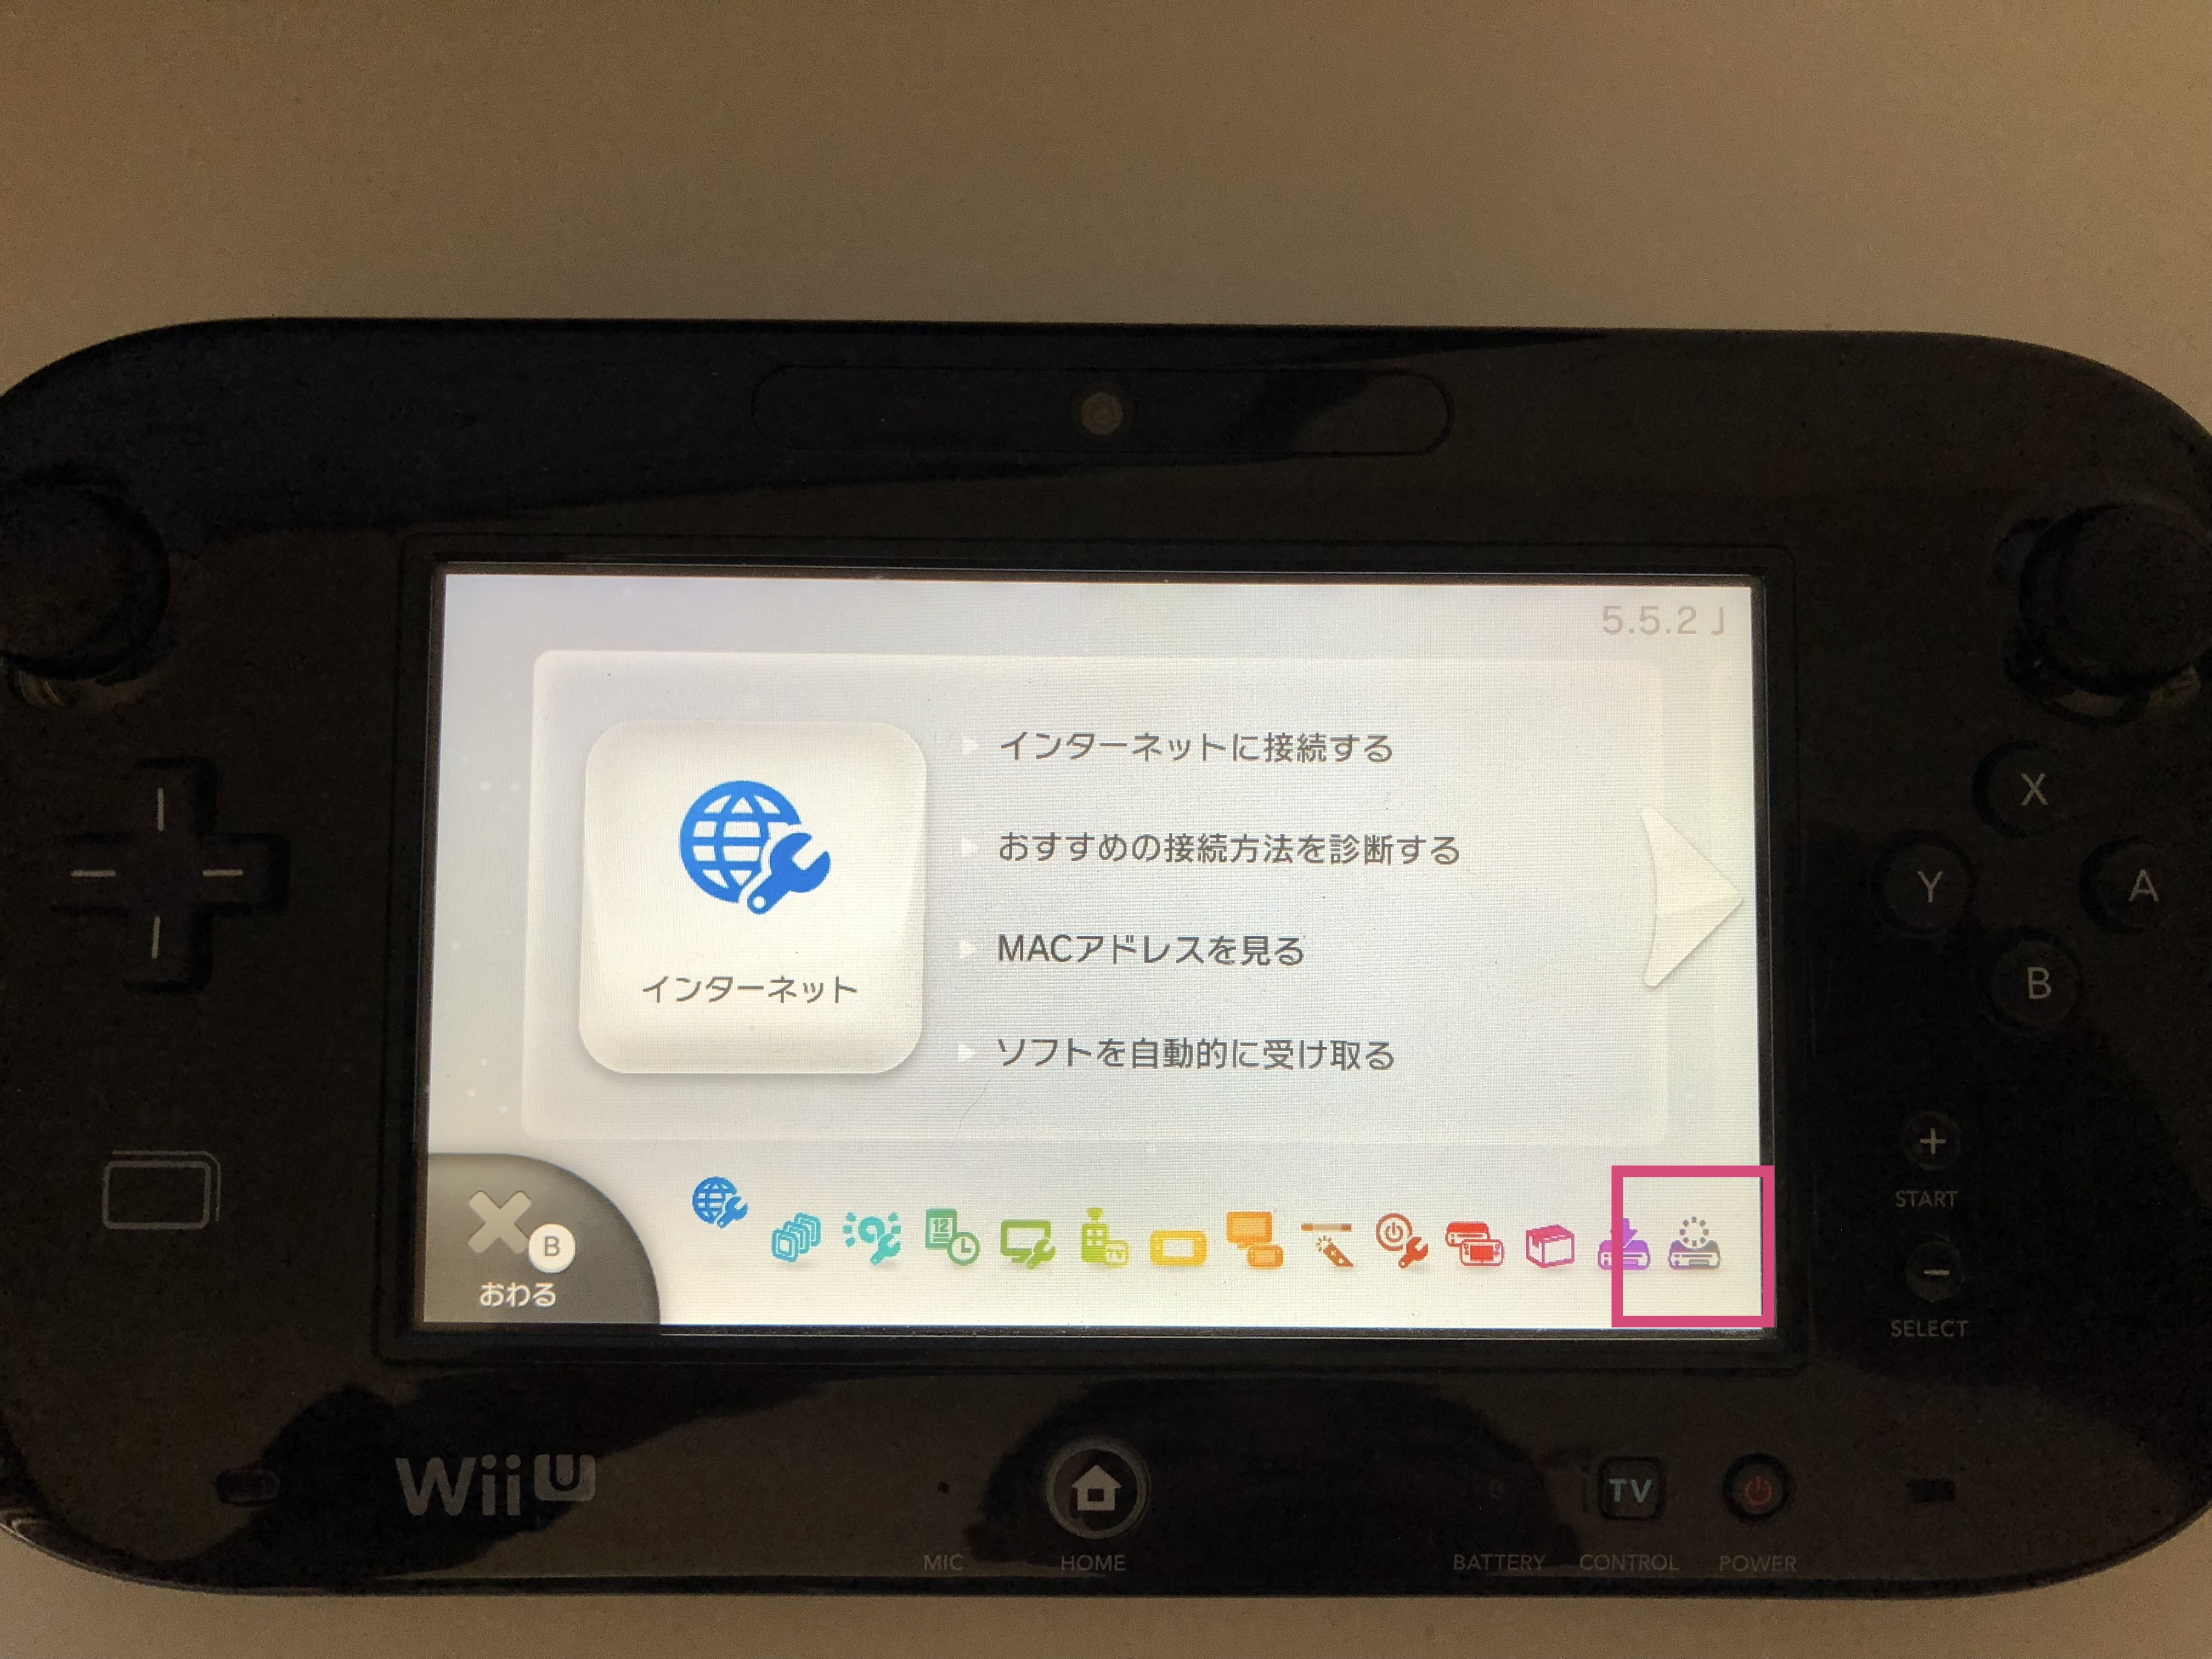 wii-u-data-formatting-wii-shopping-channel-dont-forget-2